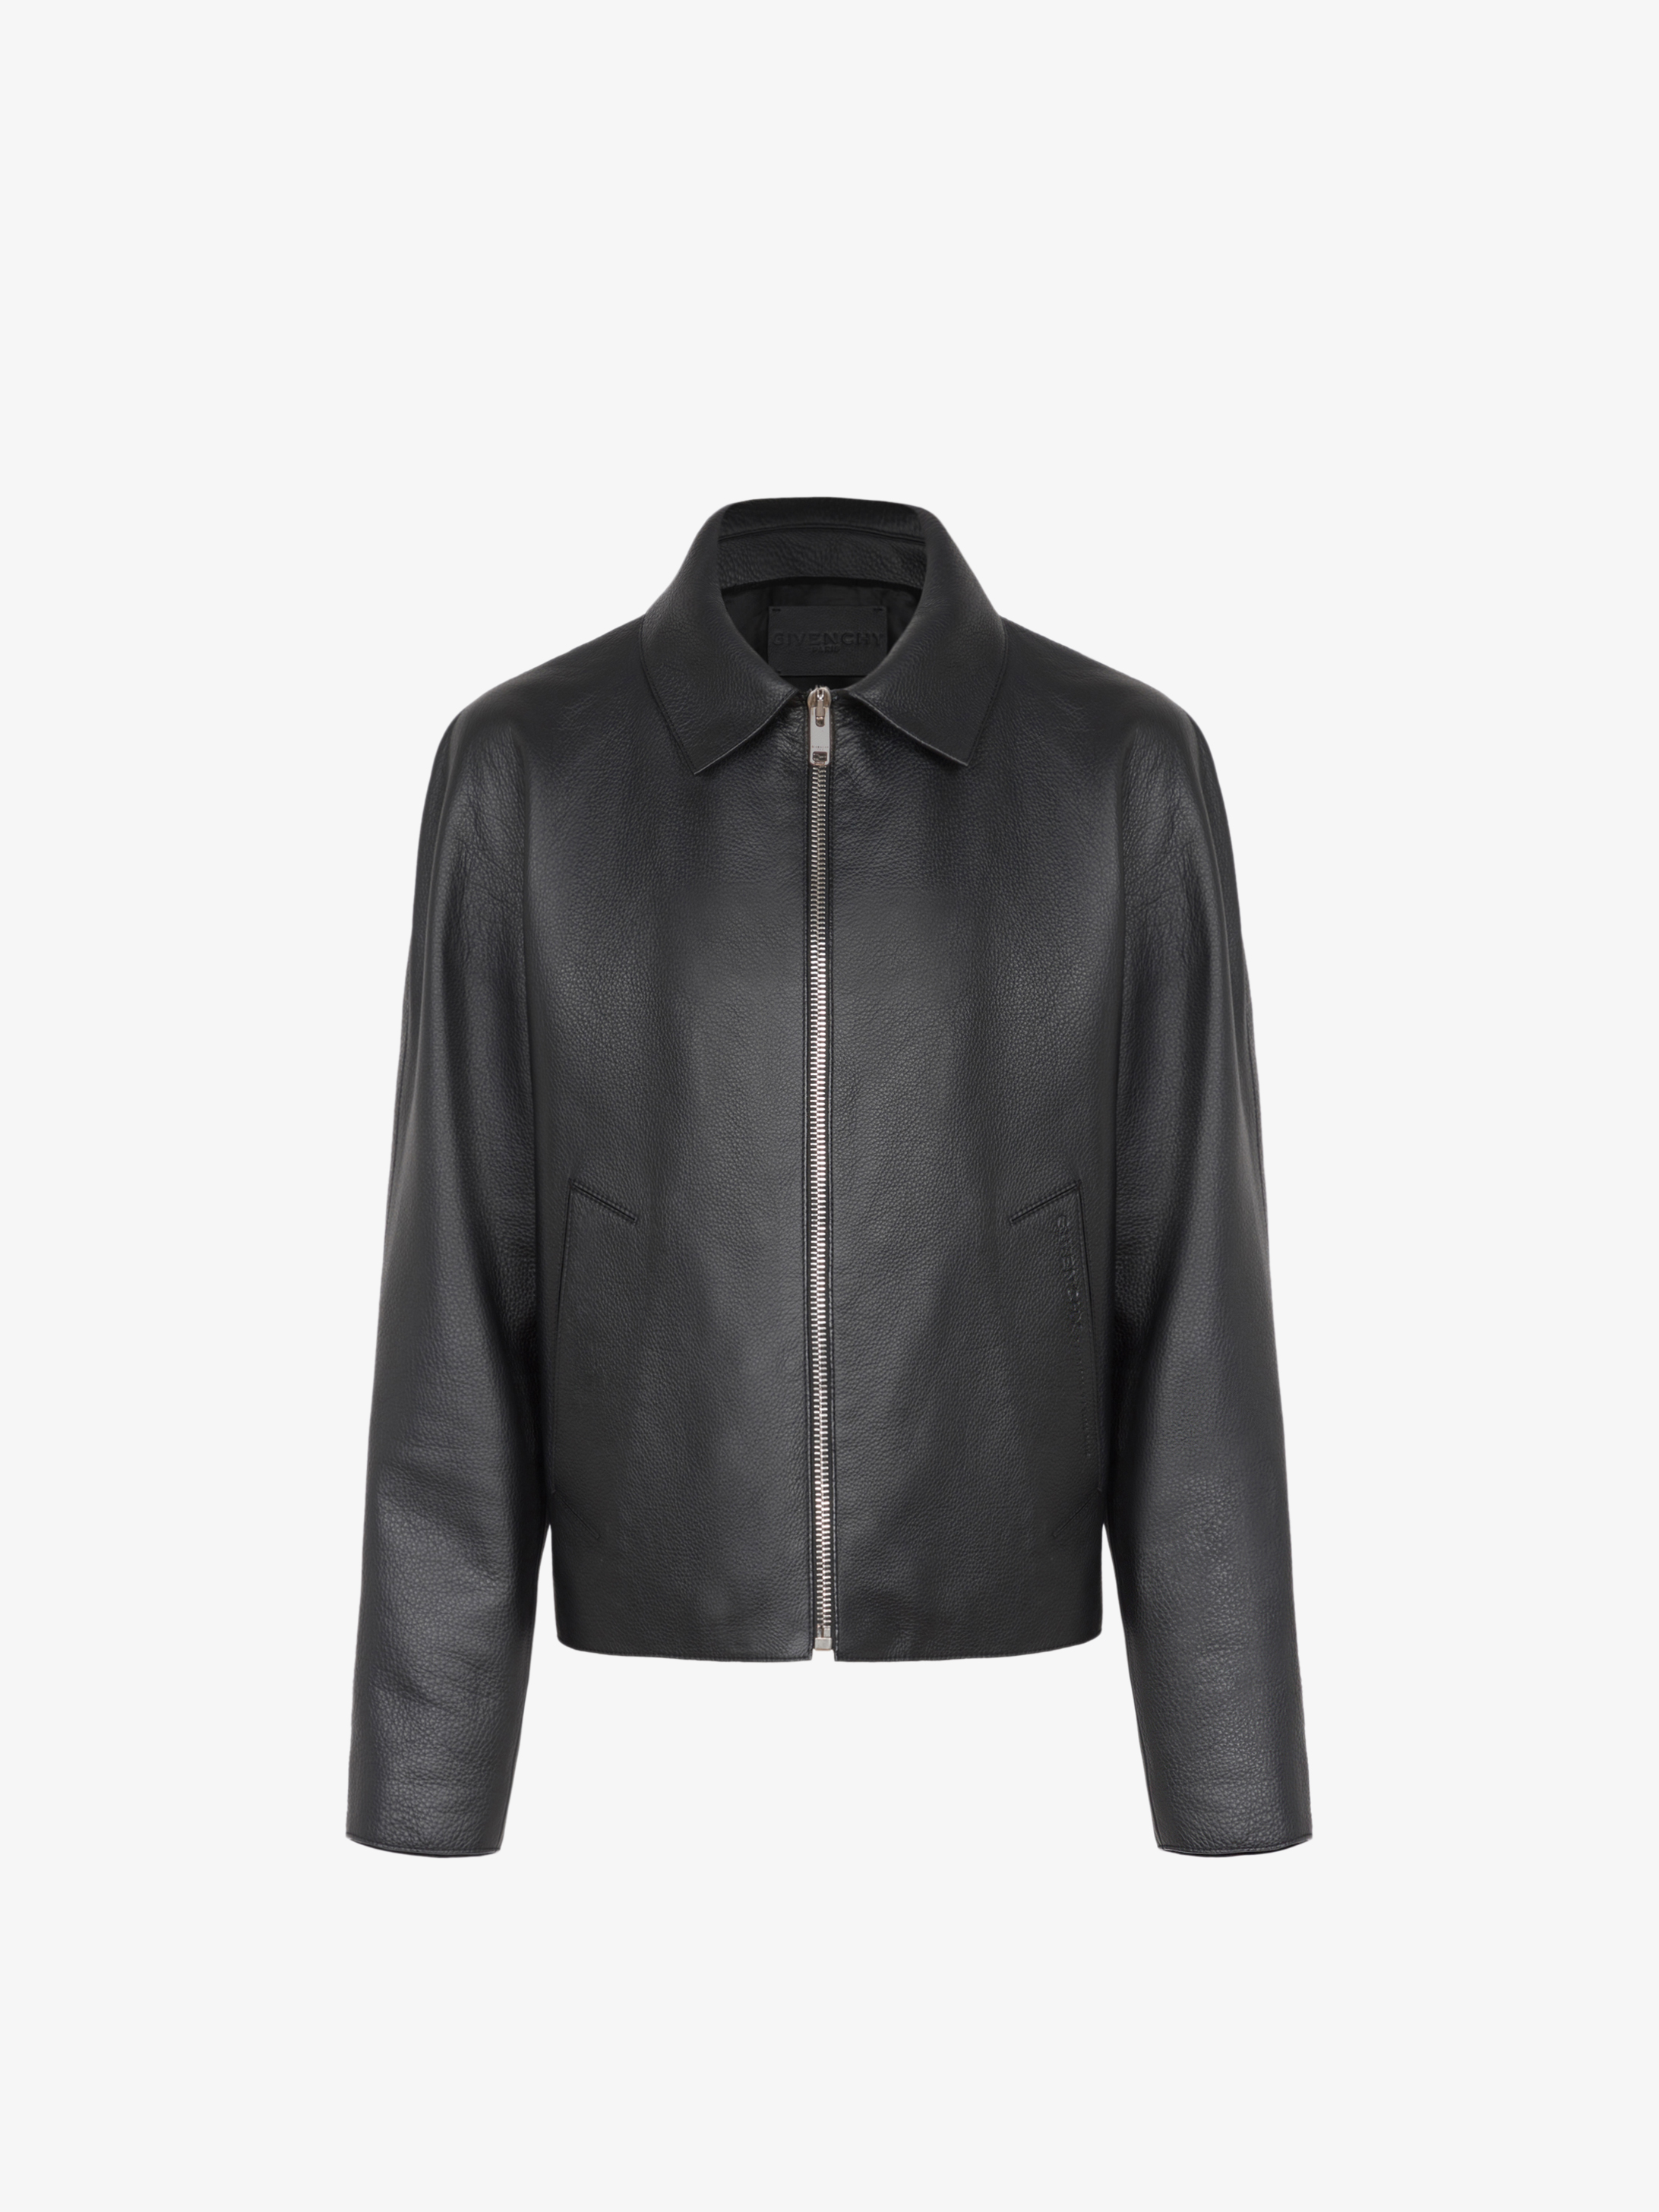 GIVENCHY jacket in leather